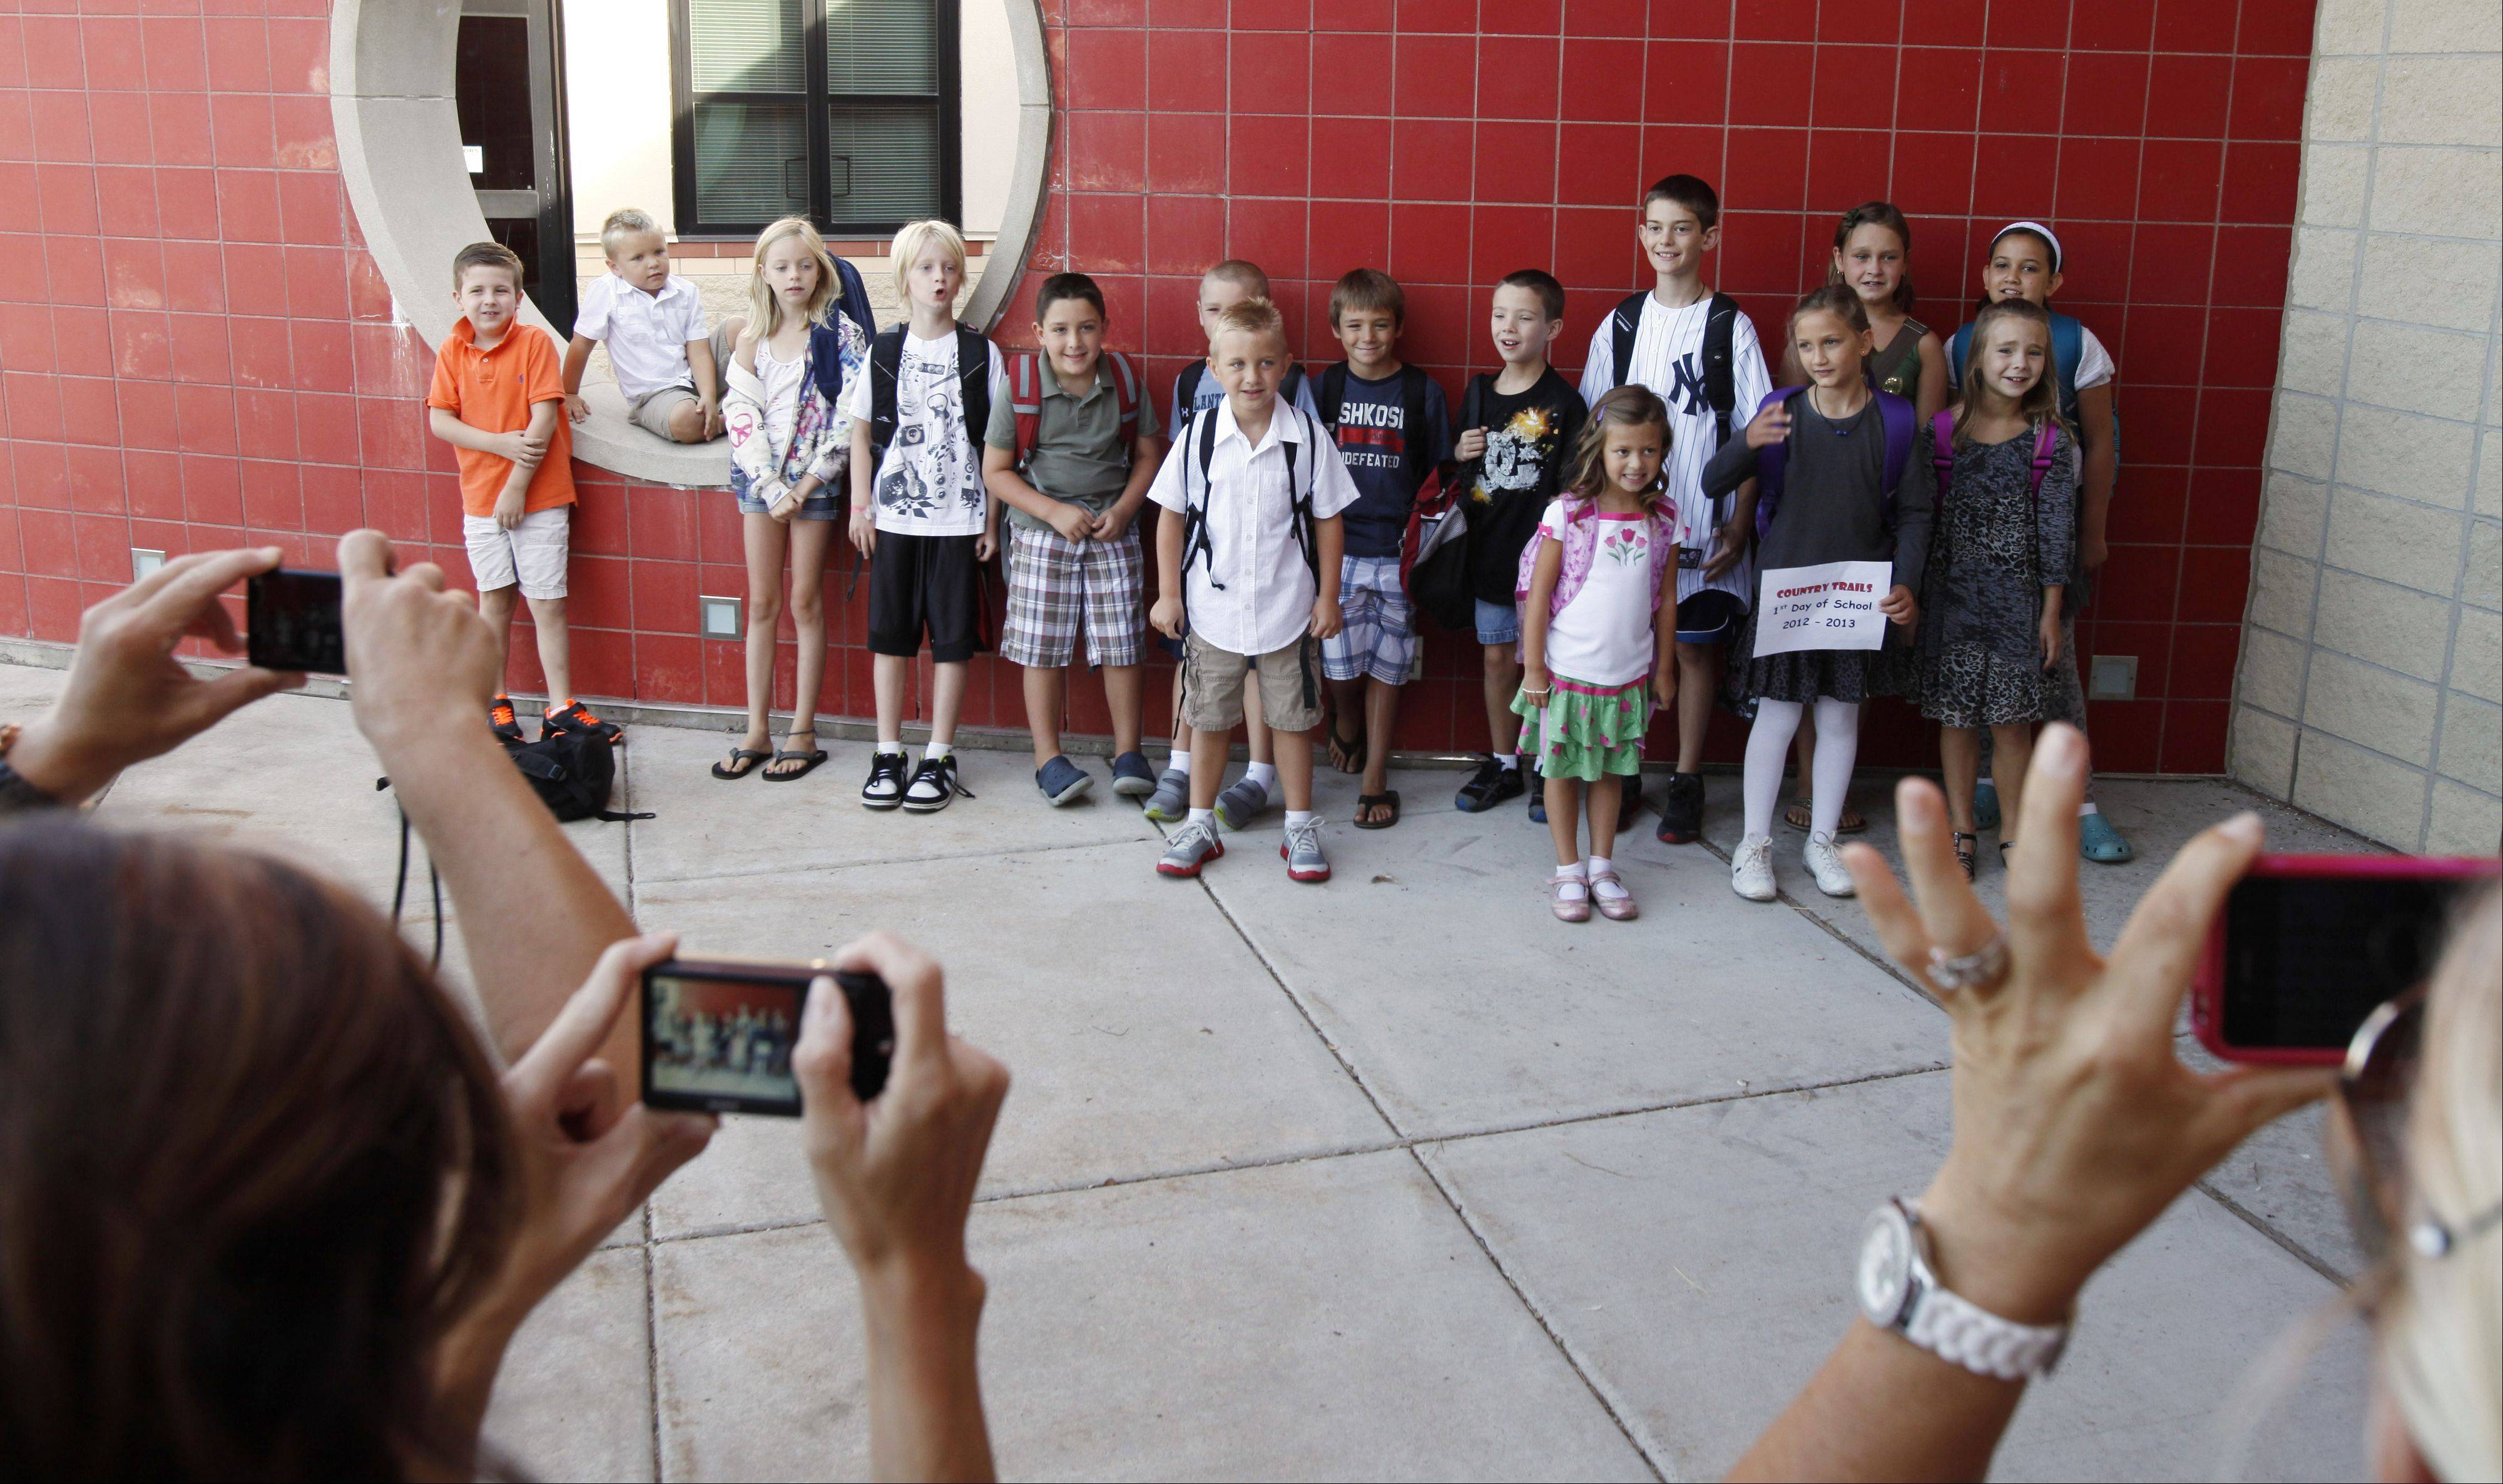 A group of moms take photos of their children before they head inside for the first day of school at Country Trails Elementary School on Elgin's far-west side. School District 301 started classes Wednesday along with many other regional school districts.